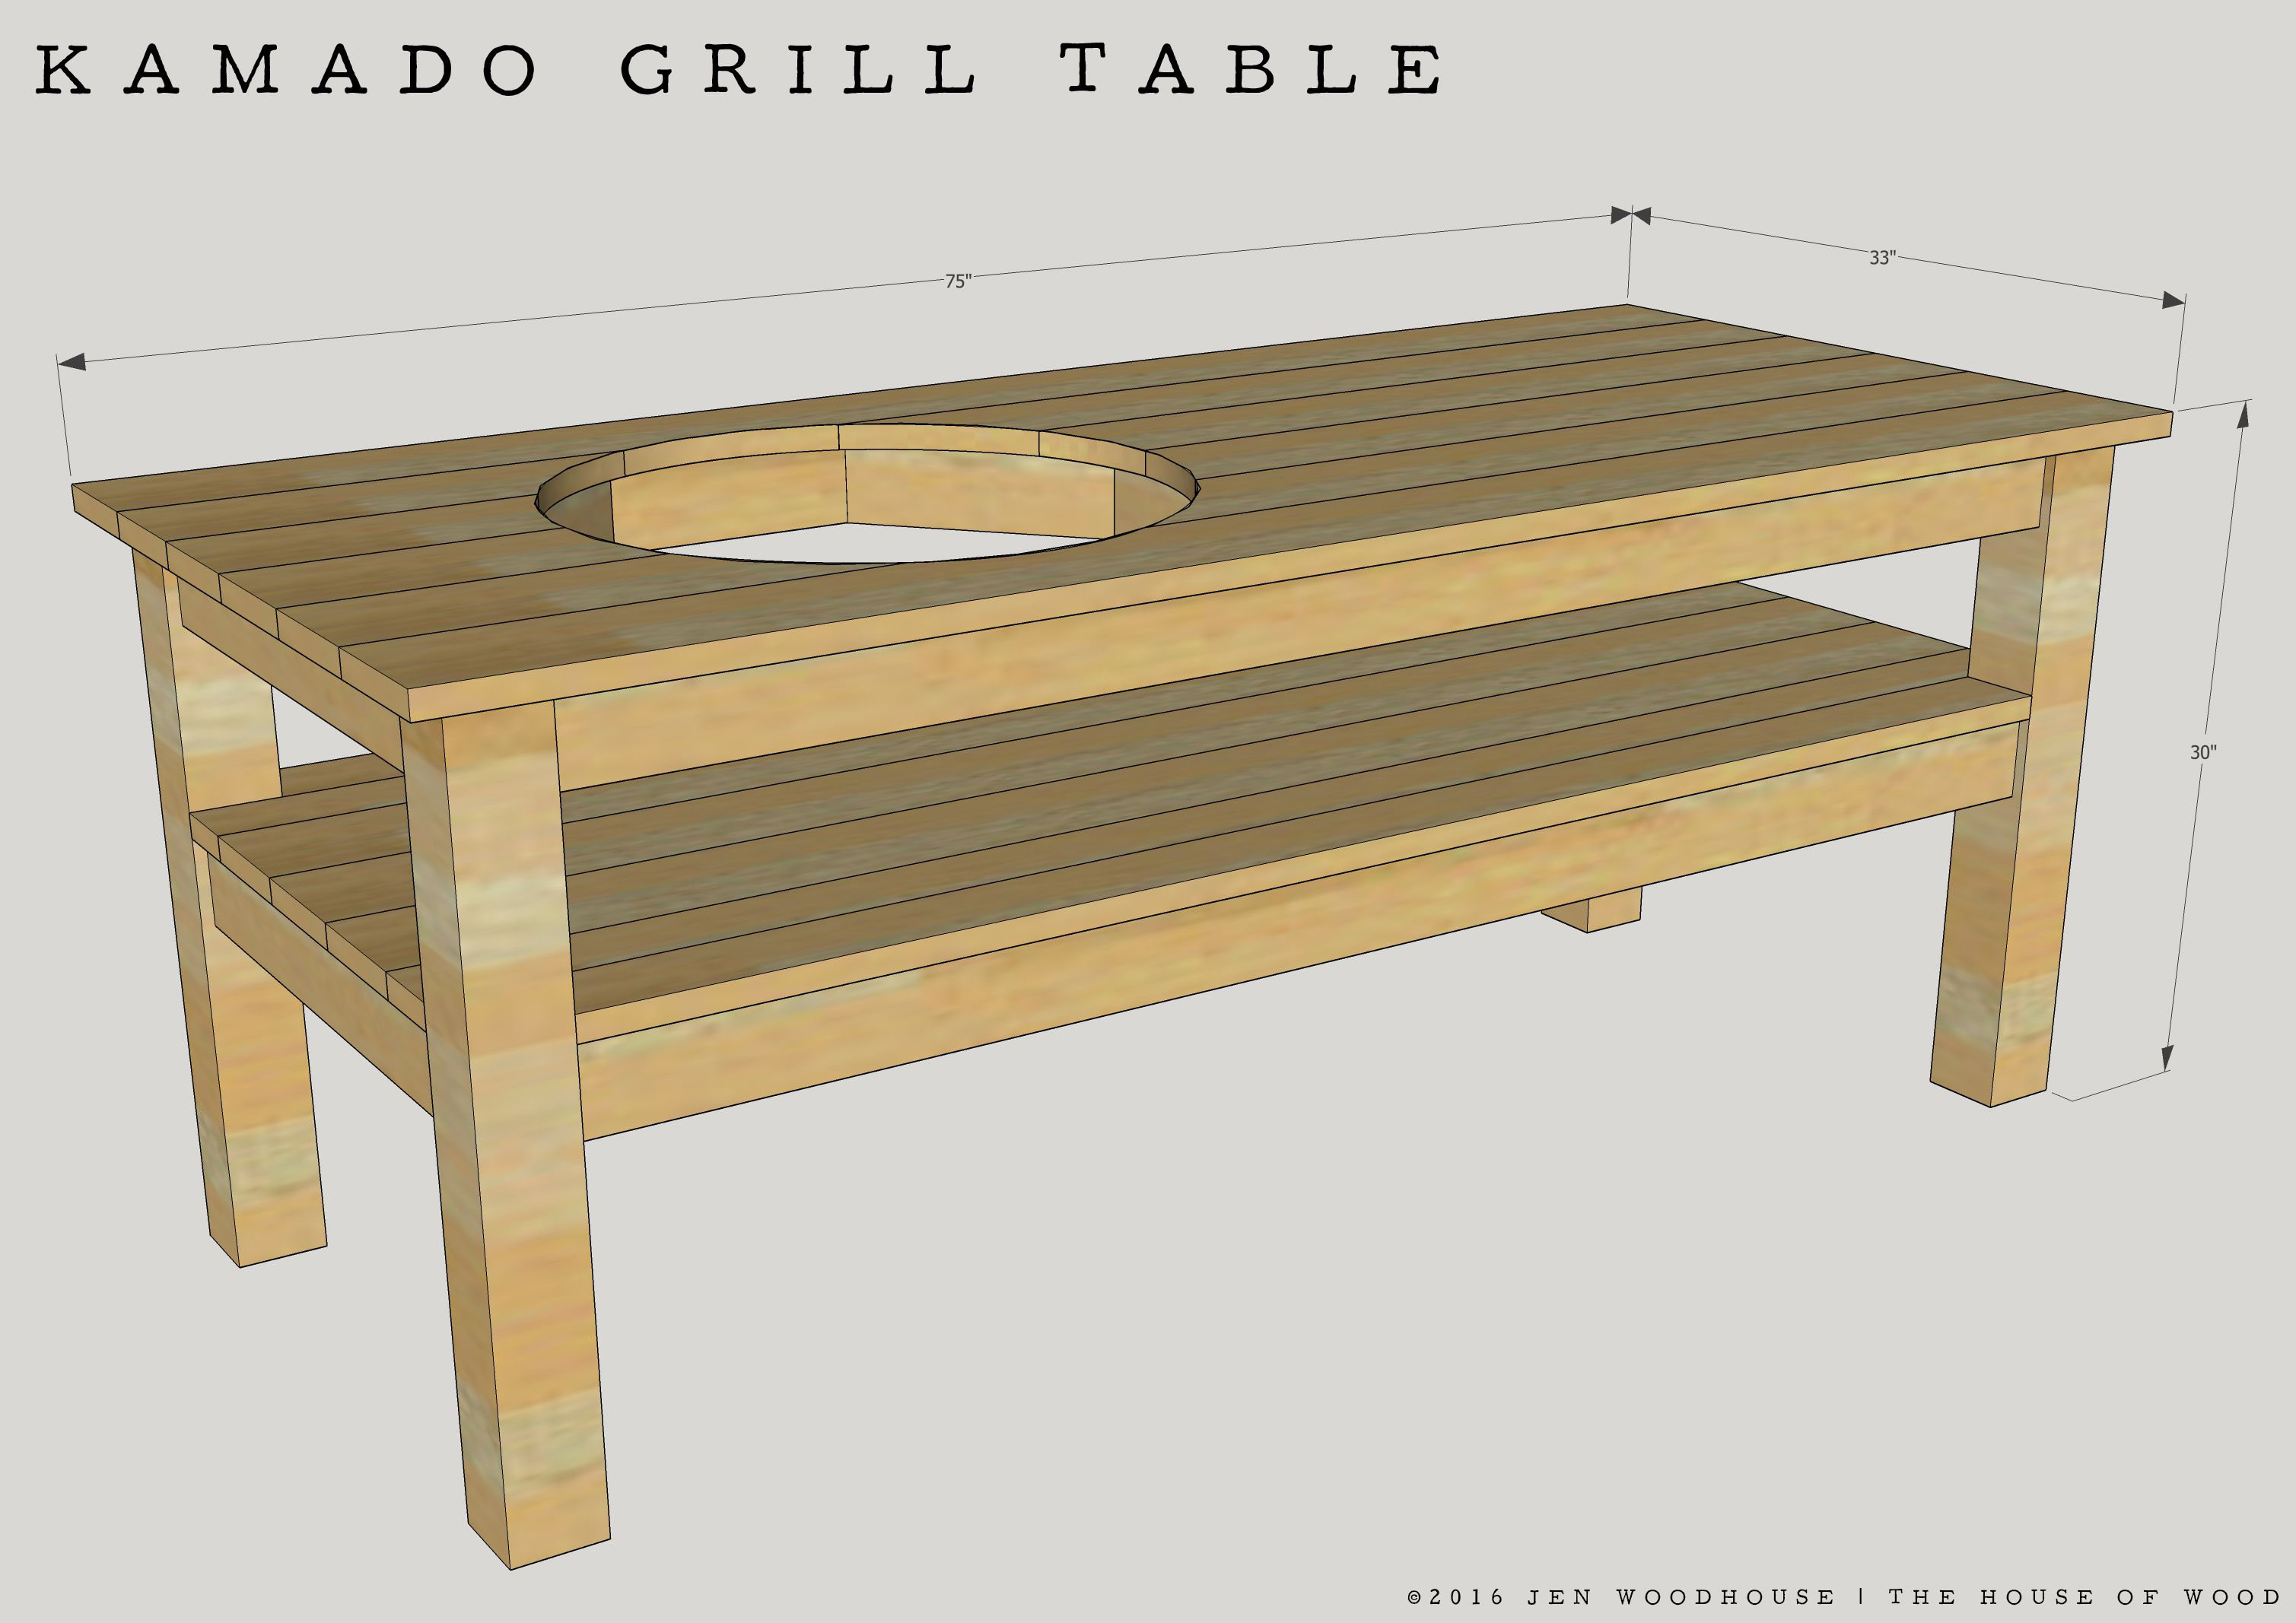 Diy Kamado Grill Table Grill Table Kamado Grill Table Bbq Table